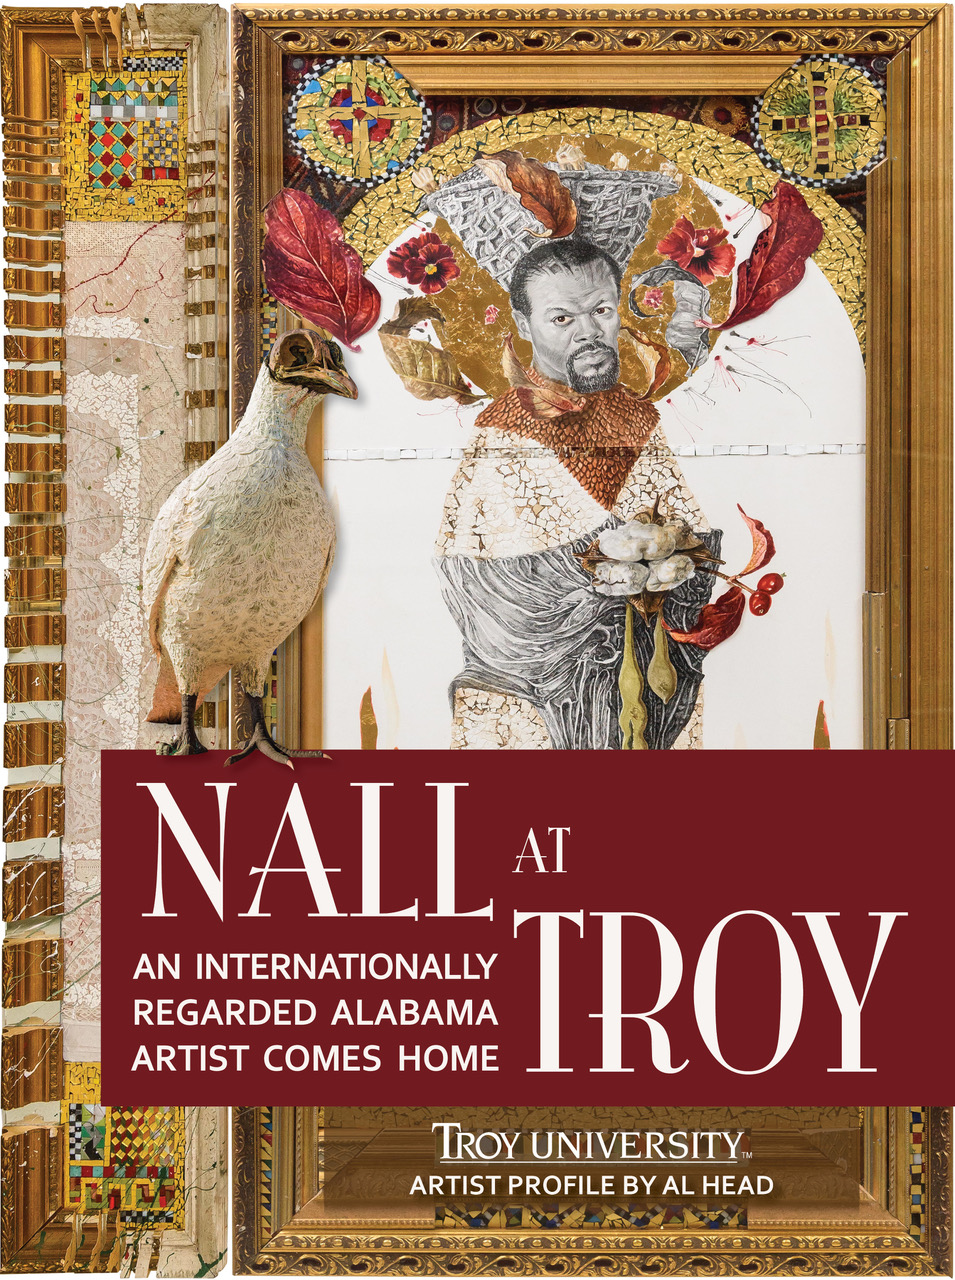 Nall at Troy: An Internationally Regarded Alabama Artist Comes Home